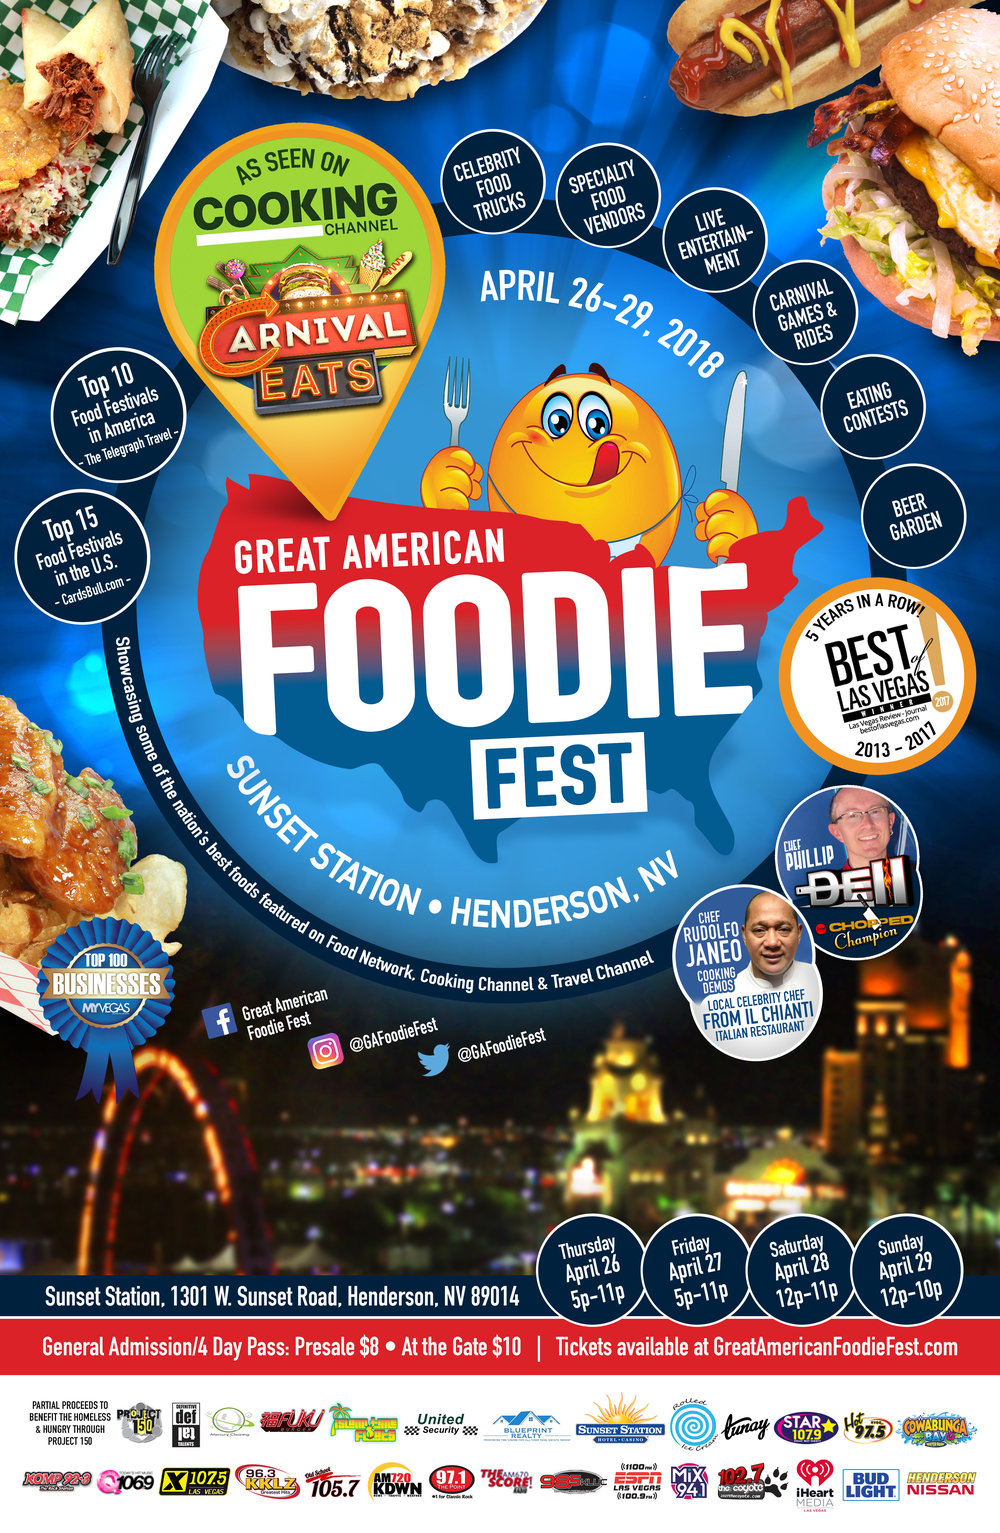 Great American Foodie Fest   is next Week!  Get ready for some carnival rides and amazing food!  If you have'nt gotten tickets already, you can buy them in advance for a discount   HERE!   Also, Nicholas from WTF Where's The Food Truck will be there having a raffle for a pretty bad ass prize, so come and find out what it is all about!